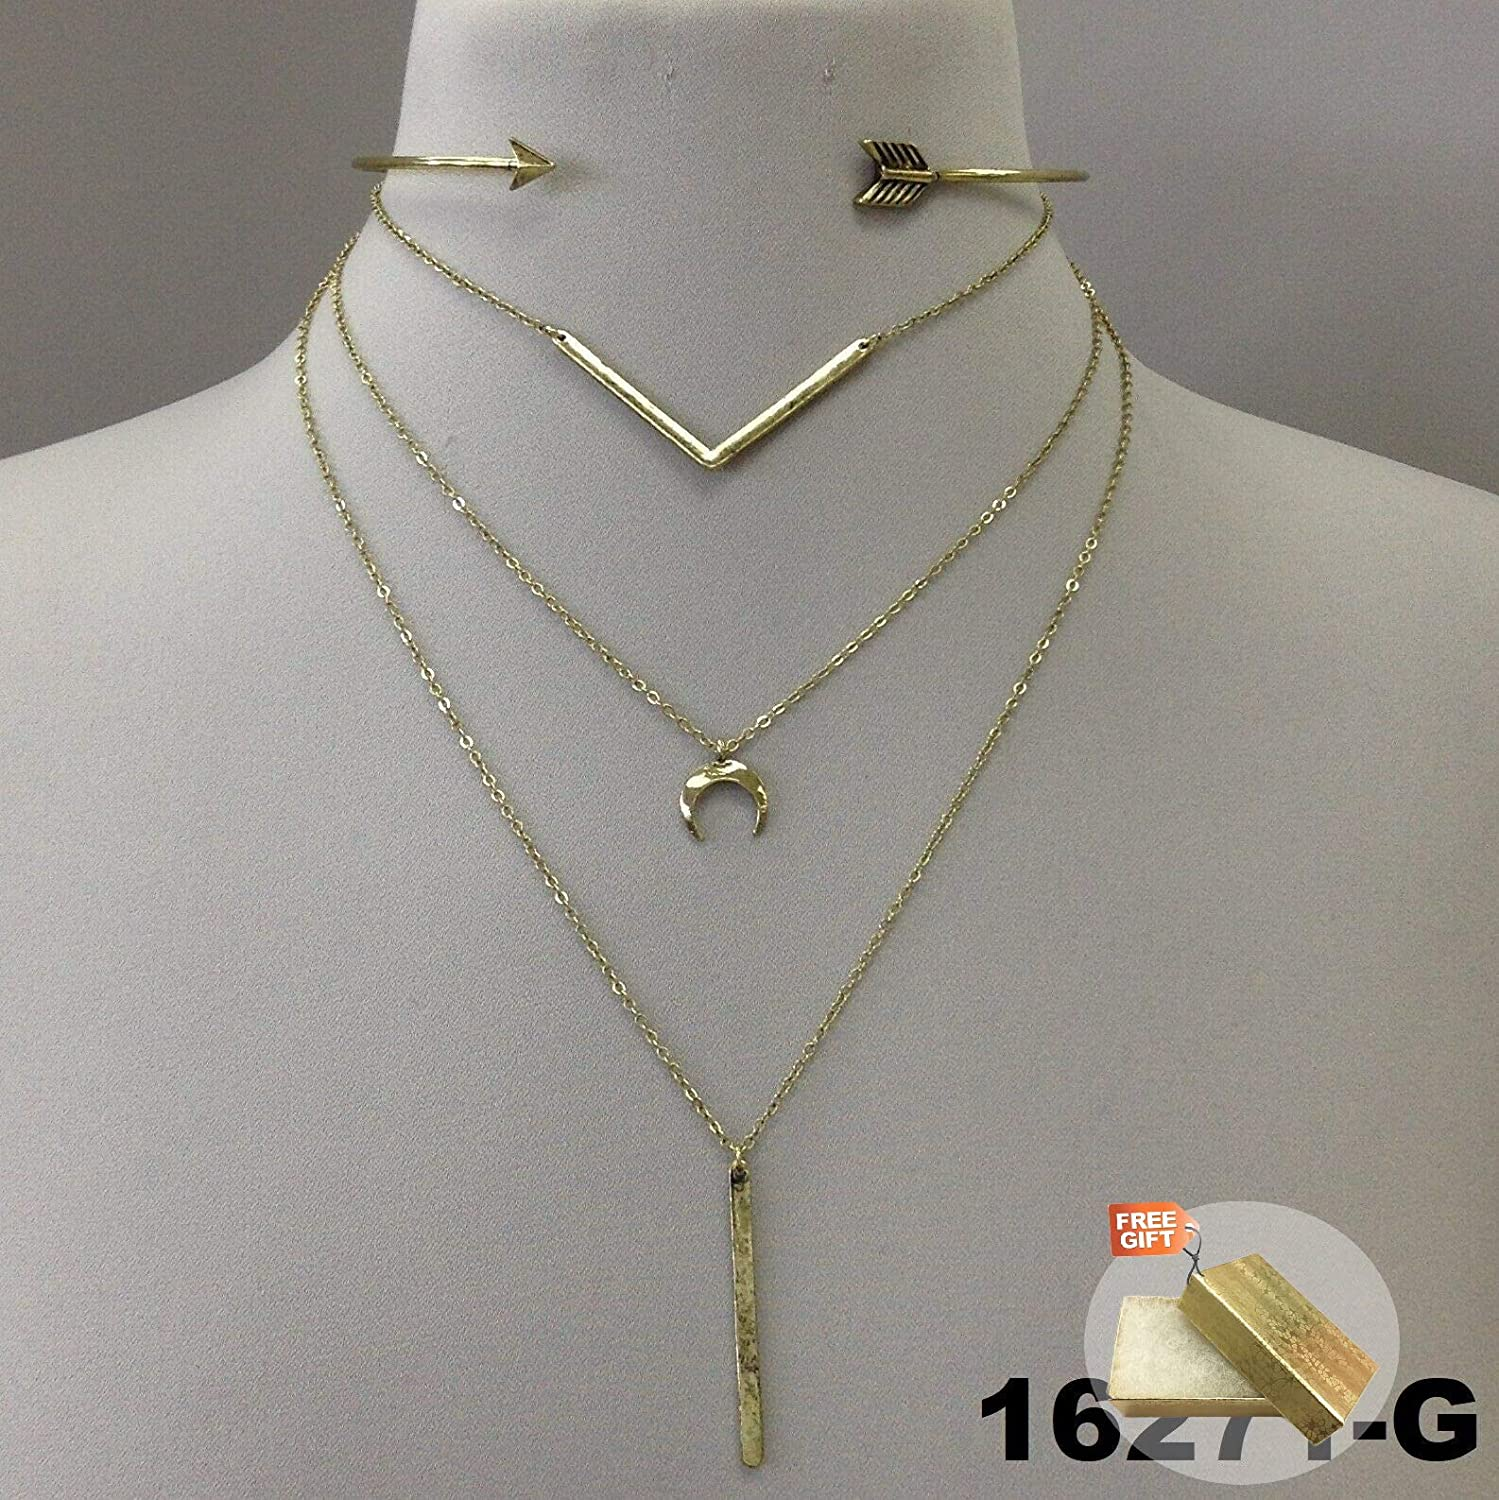 Gold Finish Triple Layer Choker Chain Bar Charm Pendants Necklace with Earrings